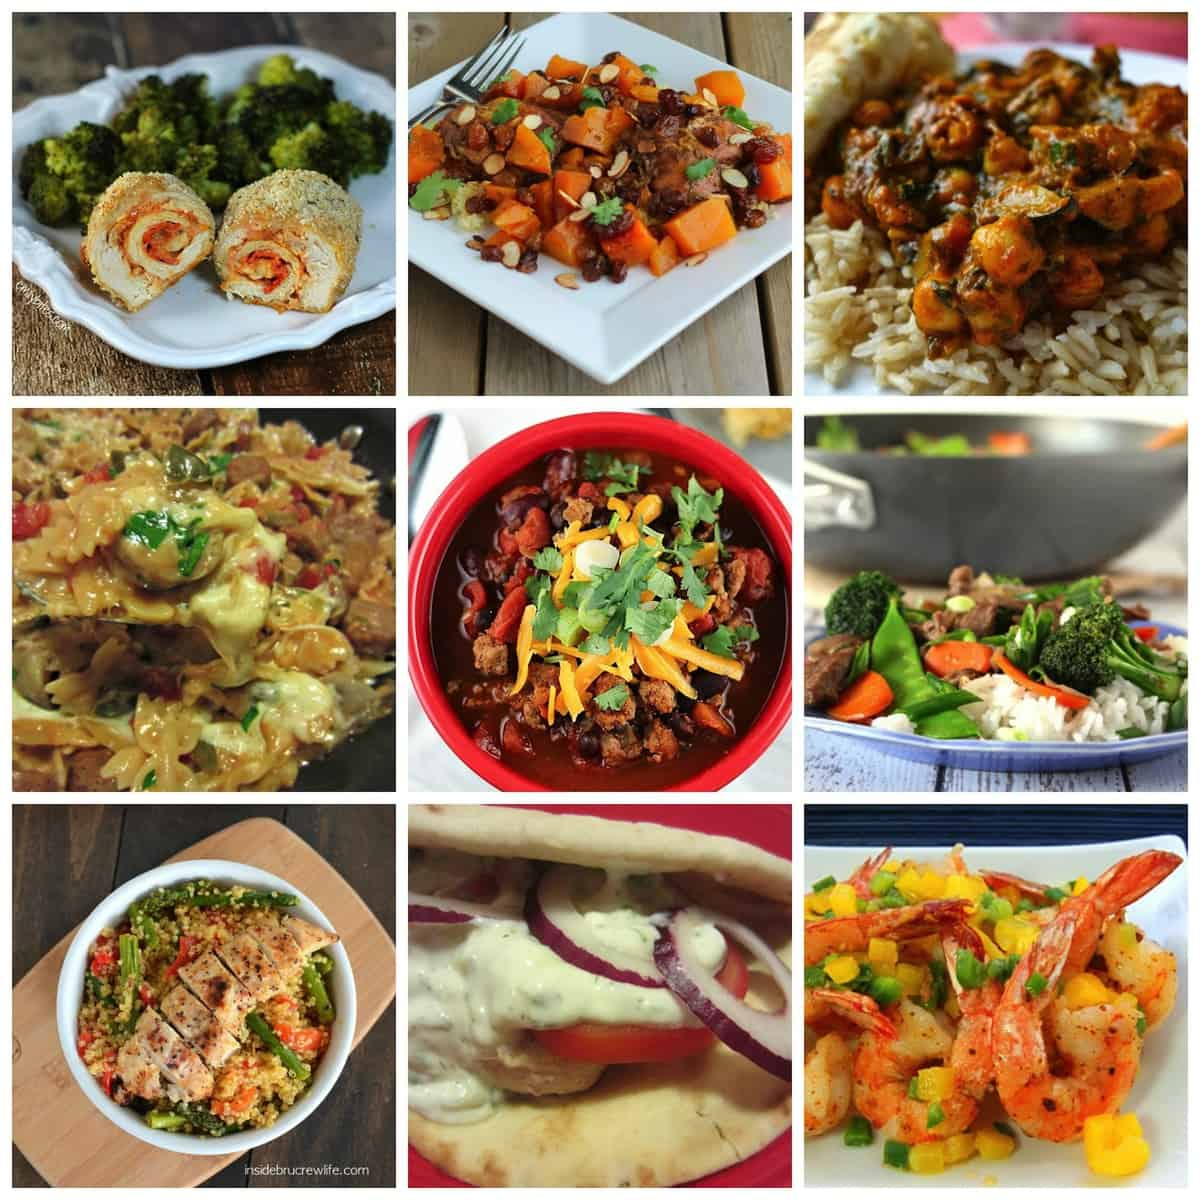 50 Easy Healthy Family Meals Round Up From Seasonal And Savory For KatiesCucina